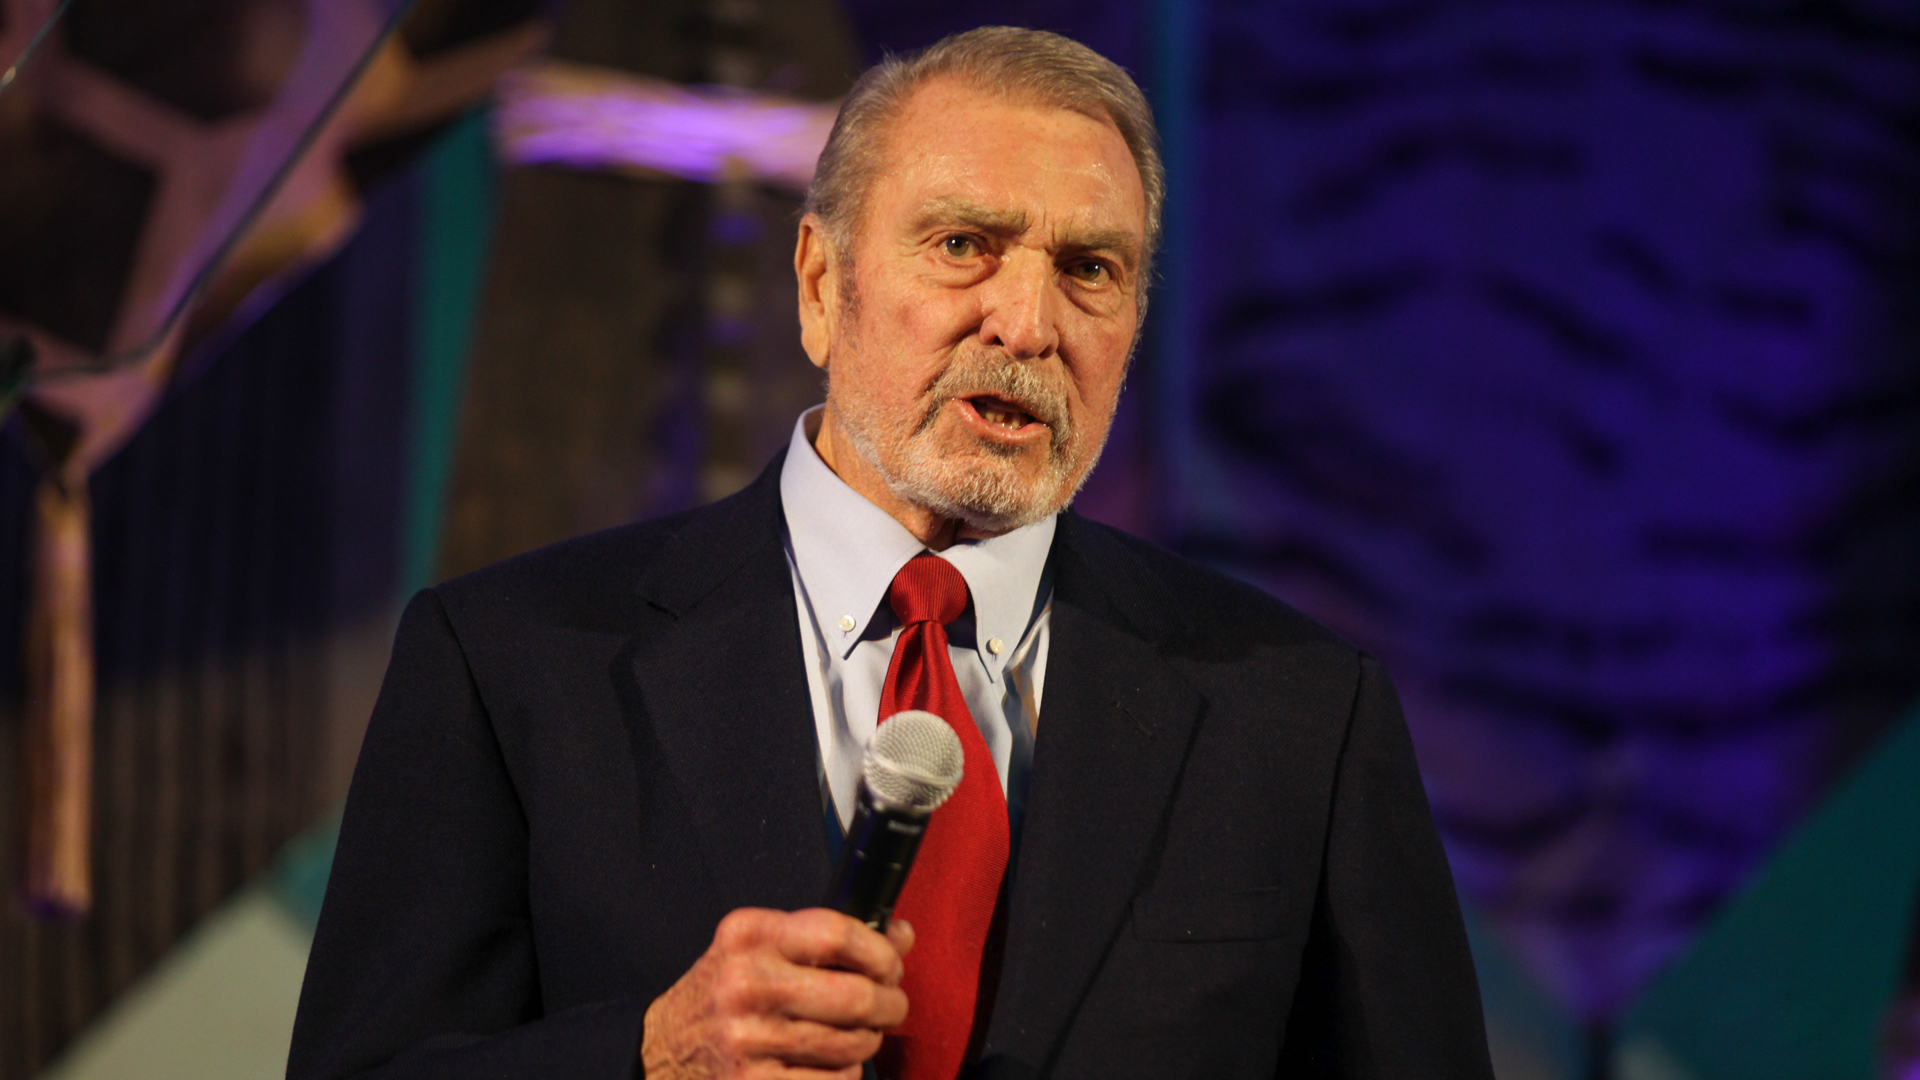 Ron Miller speaks onstage during The Walt Disney Family Museum's 3rd Annual Fundraising Gala at the Golden Gate Club on Nov. 7, 2017, in San Francisco, California. (Credit: Kelly Sullivan/Getty Images for The Walt Disney Family Museum)